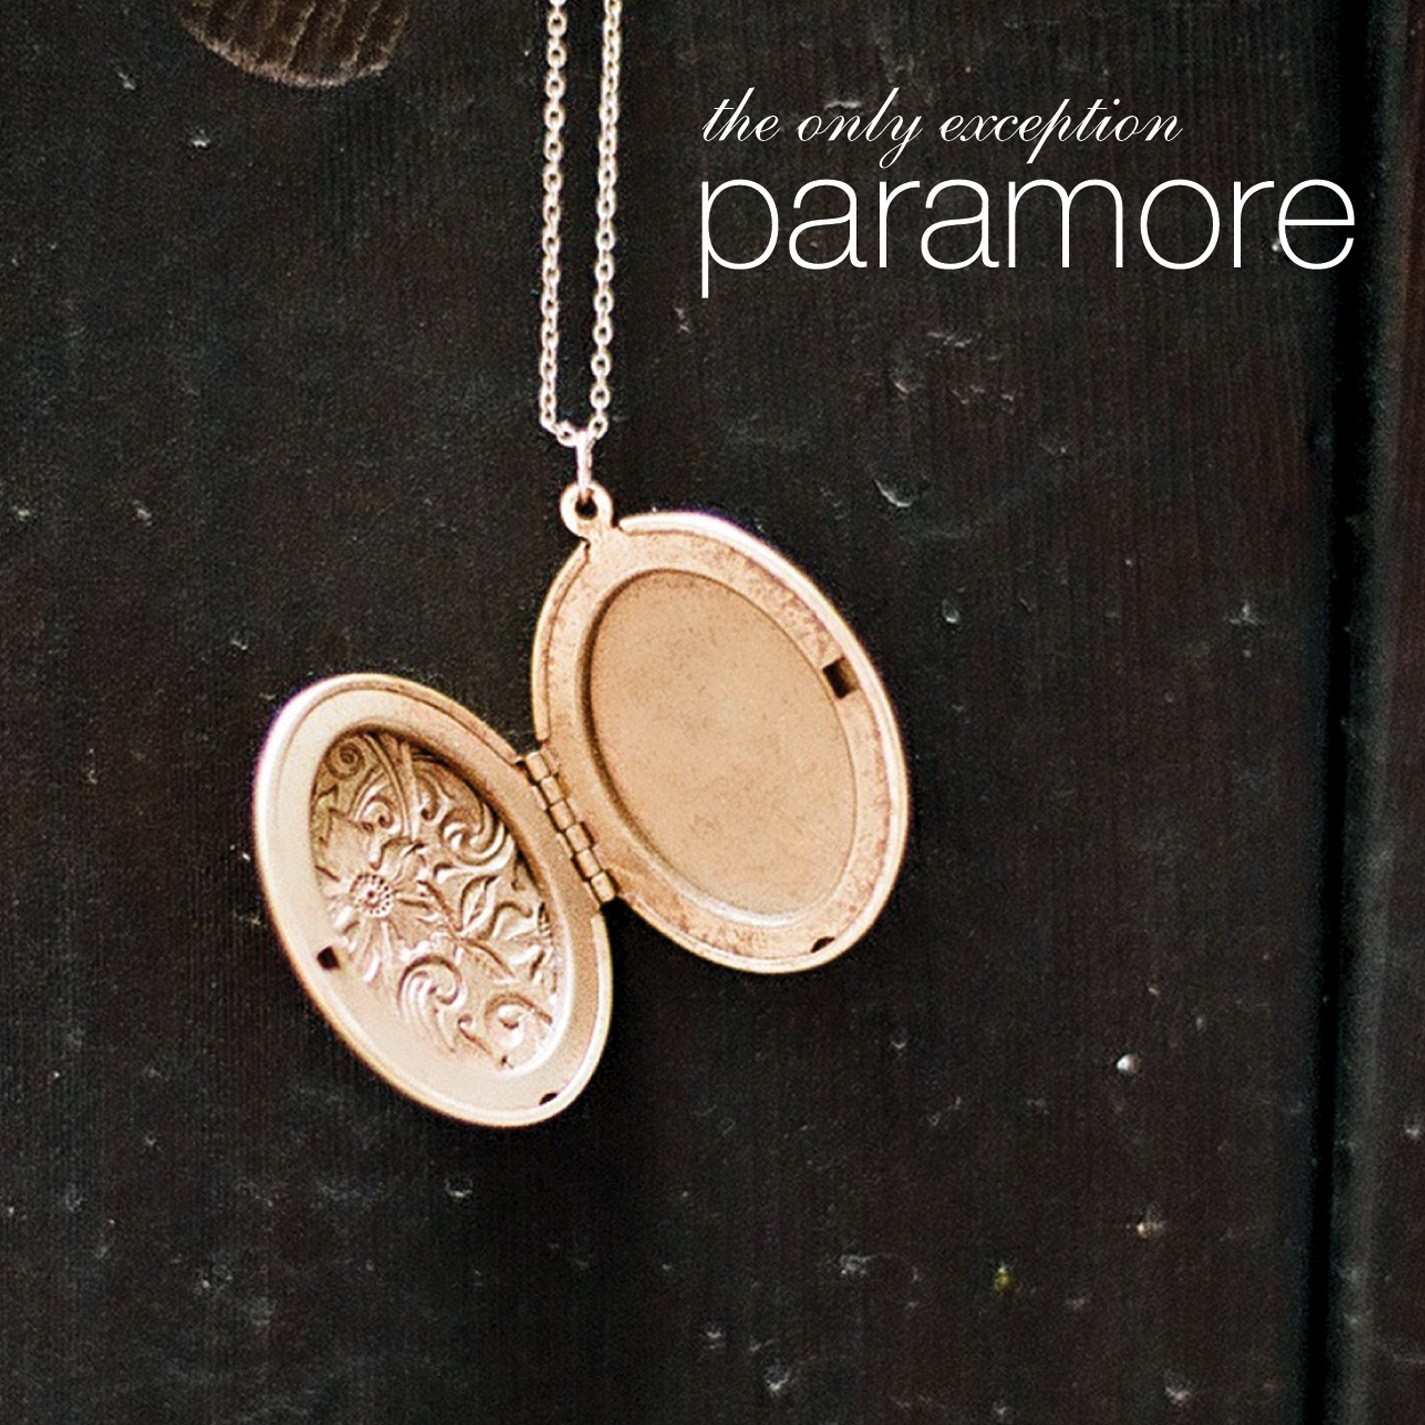 Paramore New Single Artwork Online - News - Rock Sound ... Paramore The Only Exception